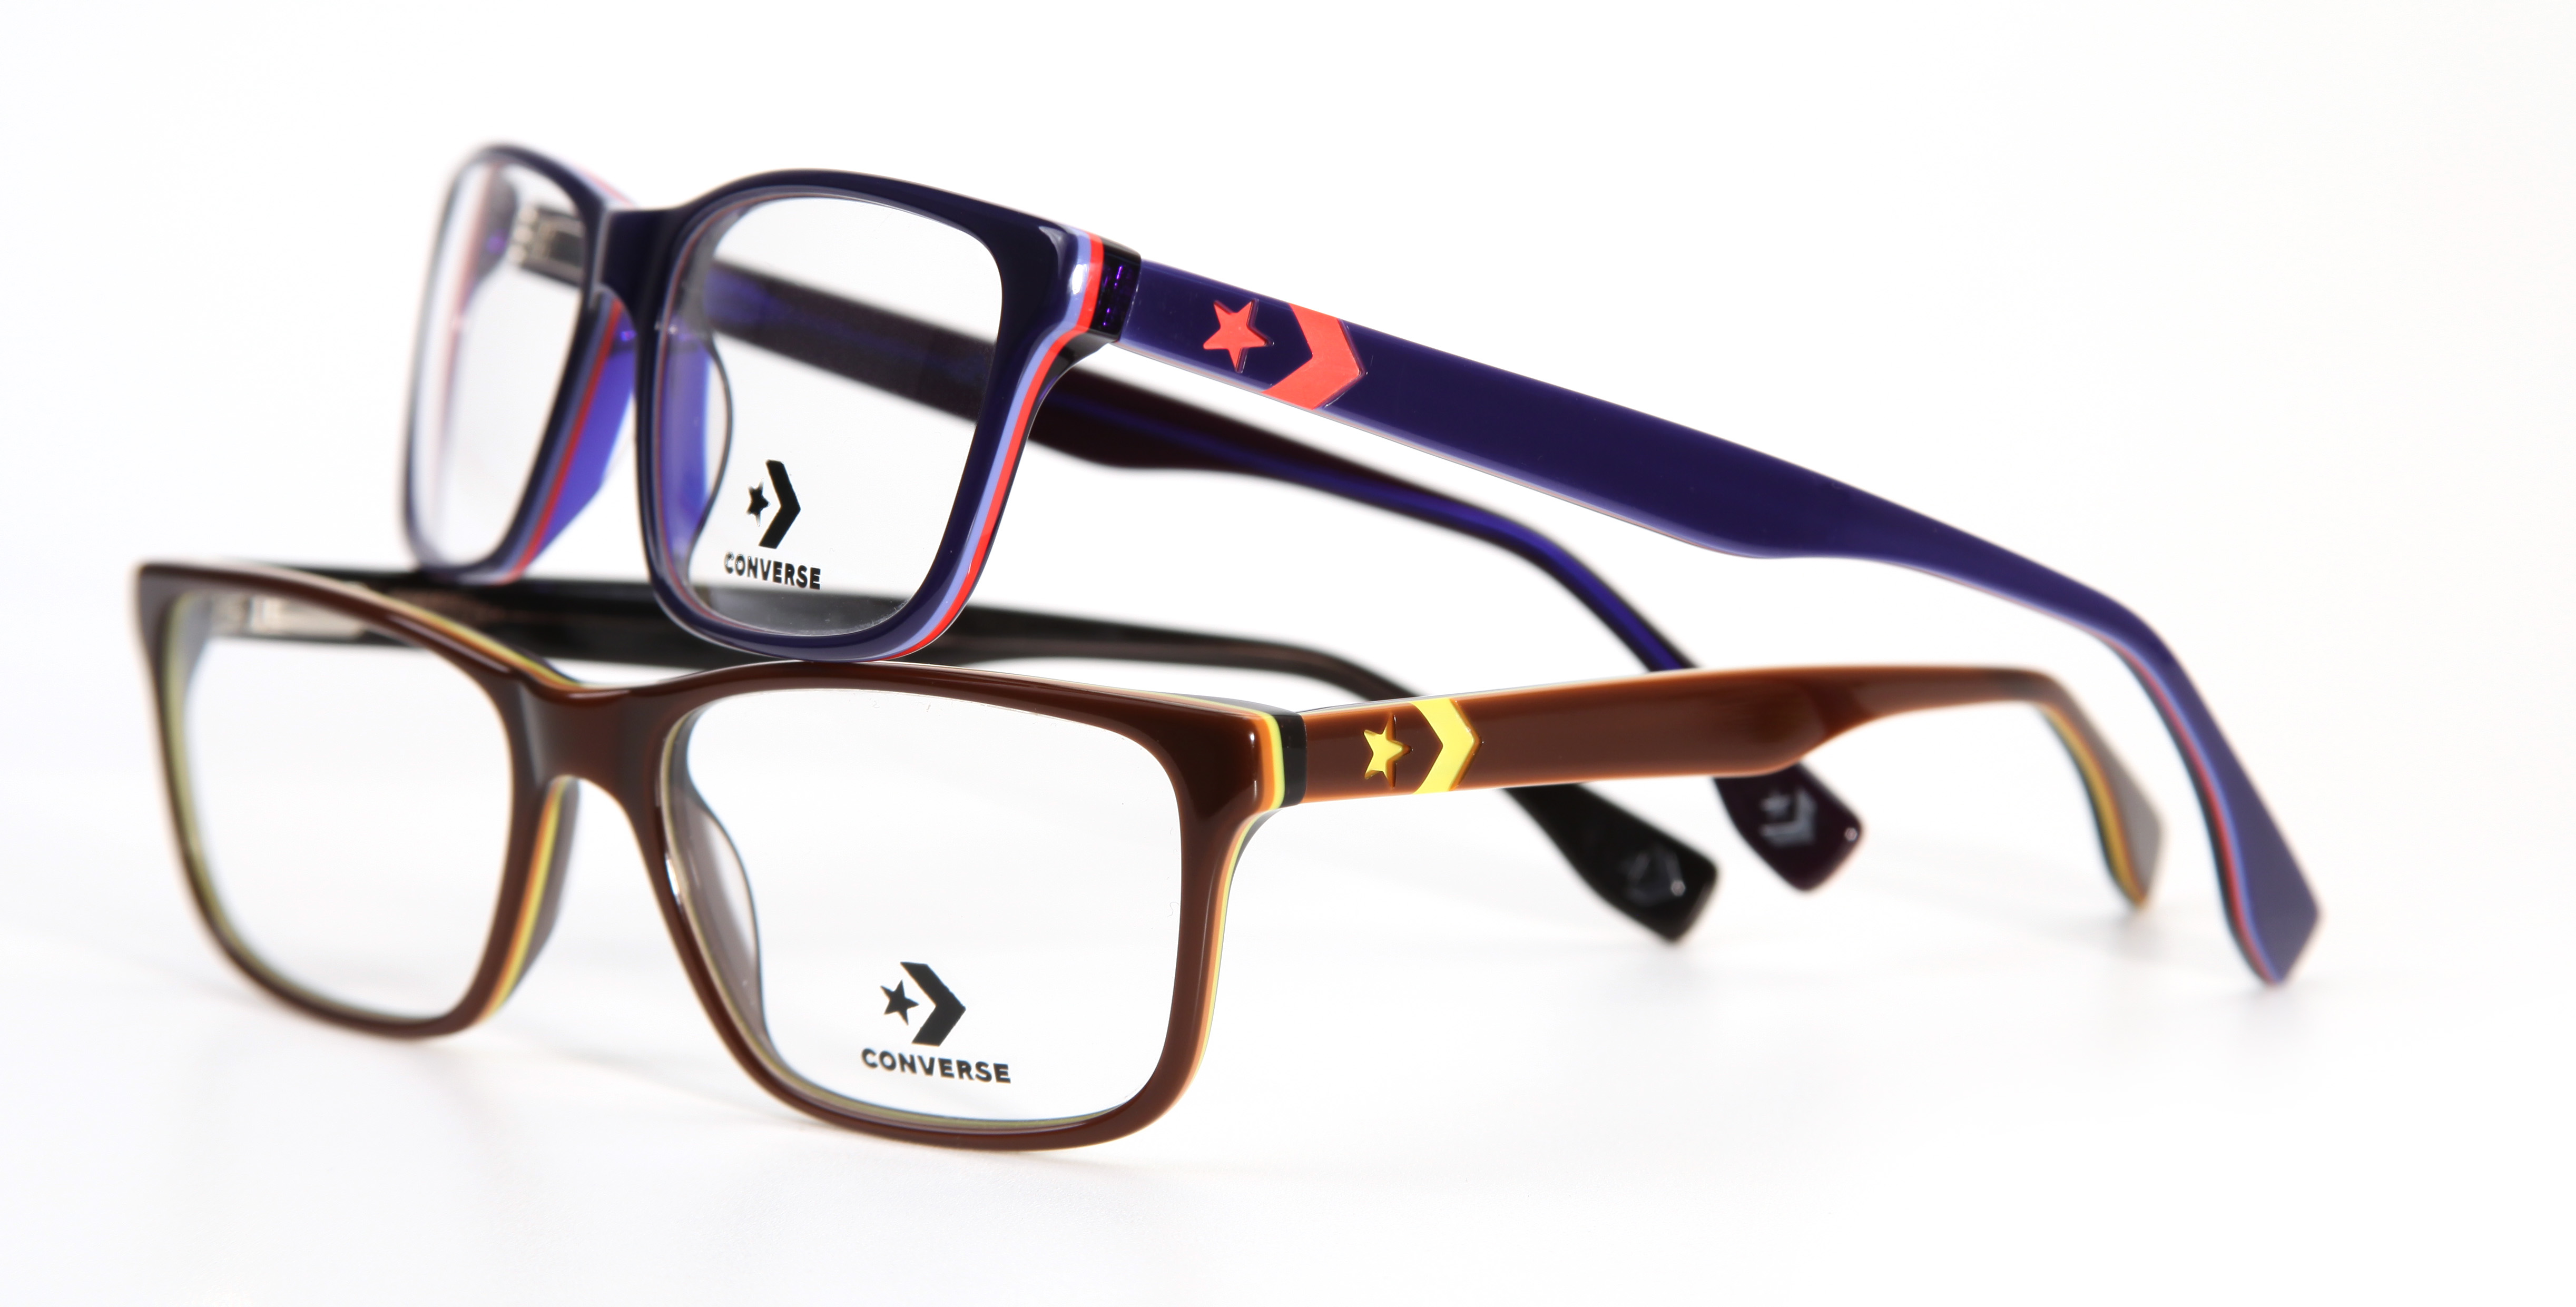 Eyewear Company, De Rigo REM, Donates 10,000 Frames to National Vision's Philanthropic Efforts